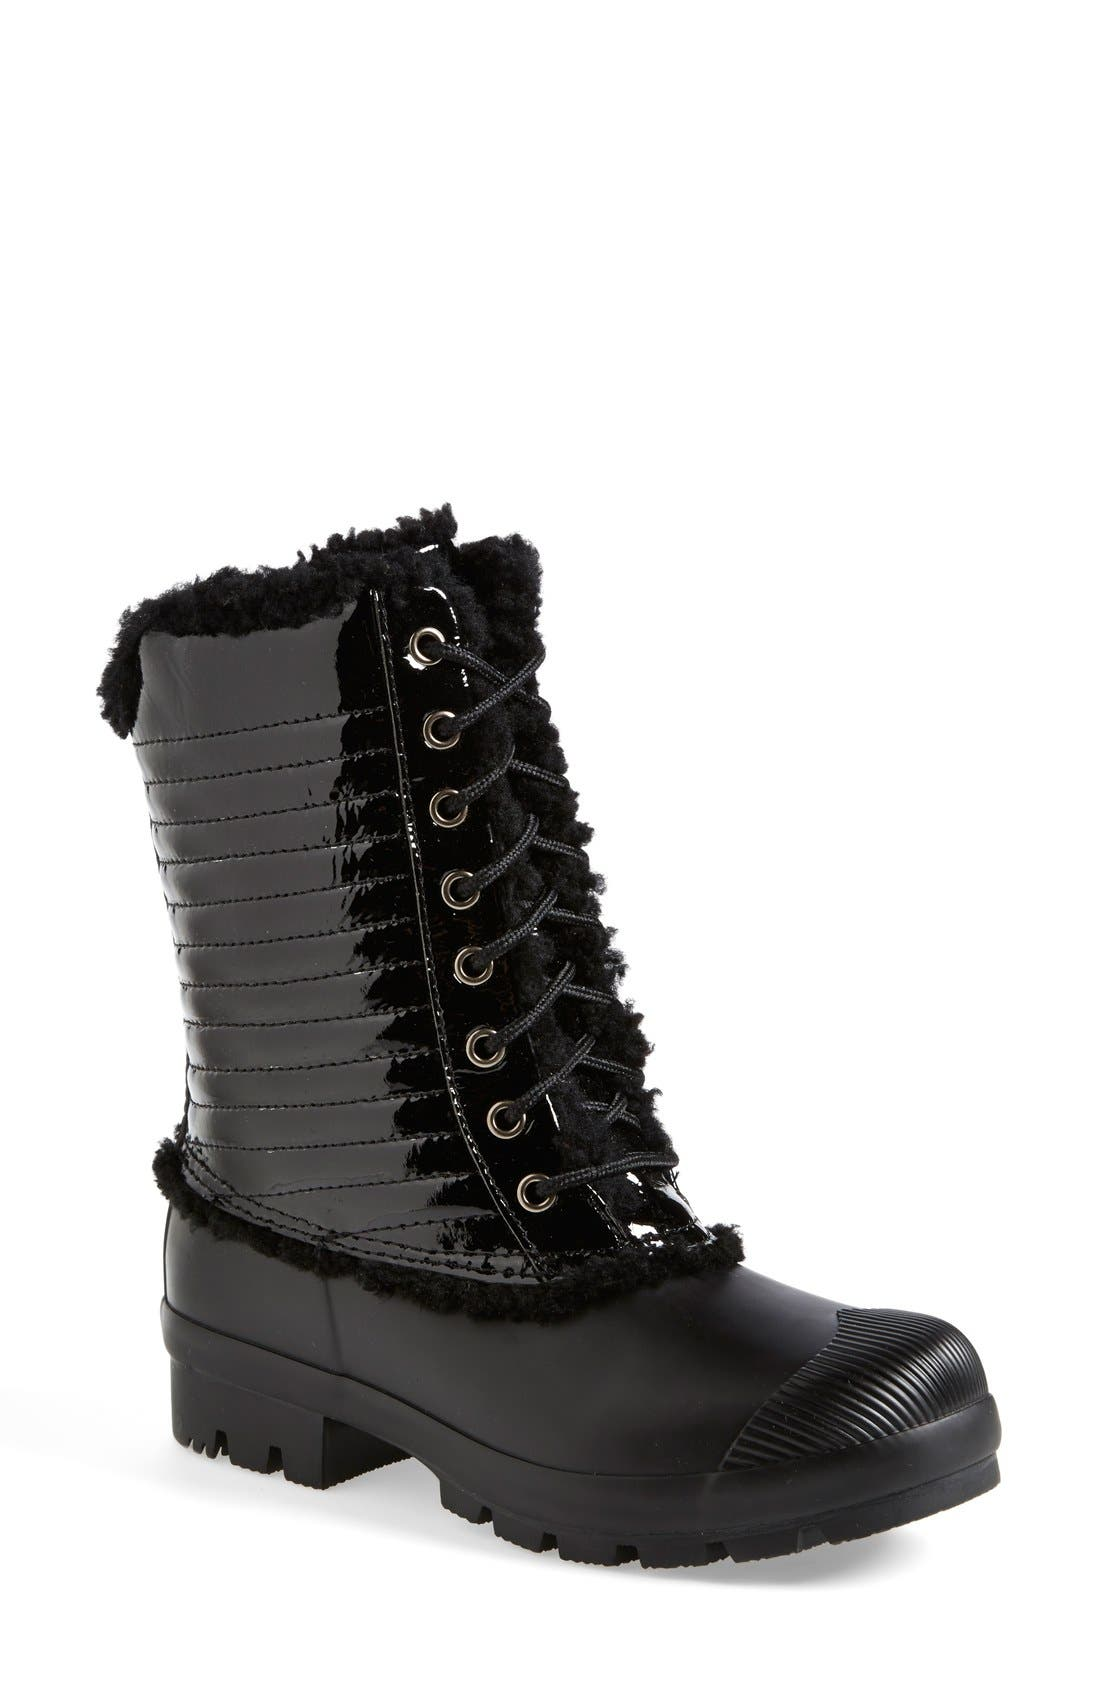 Alternate Image 1 Selected - Hunter Original Genuine Shearling & Patent Leather Lace-Up Rain Boot (Women)